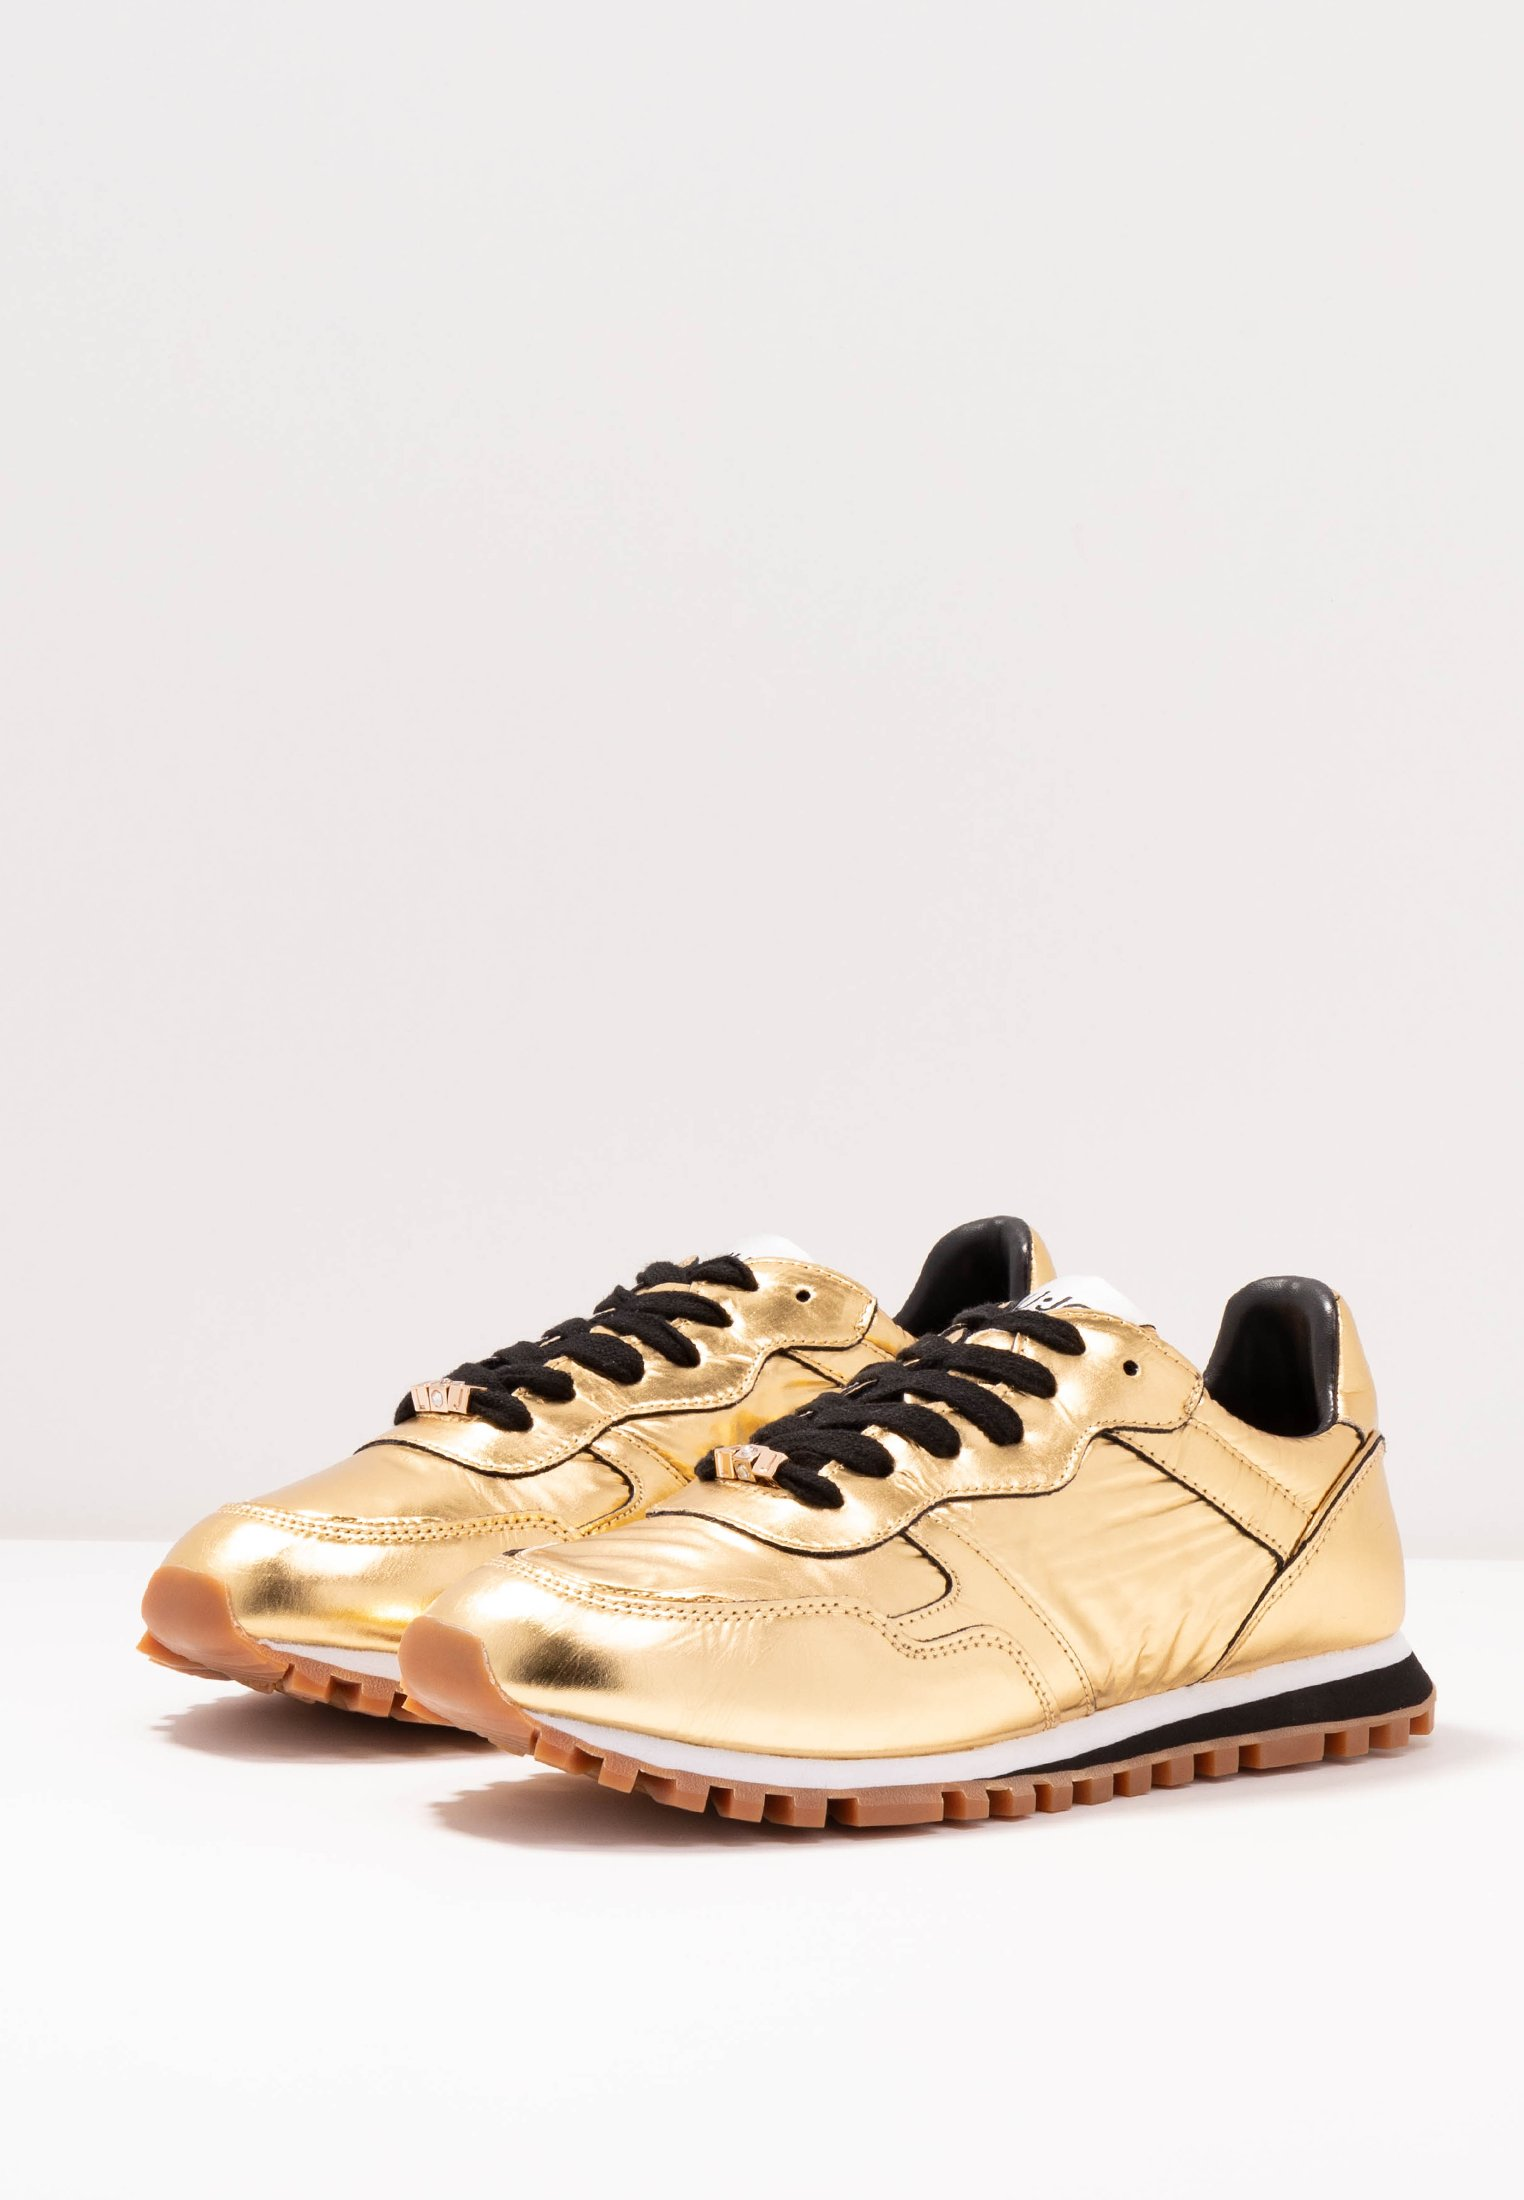 Liu Jo Jeans Sneaker low - gold - Black Friday